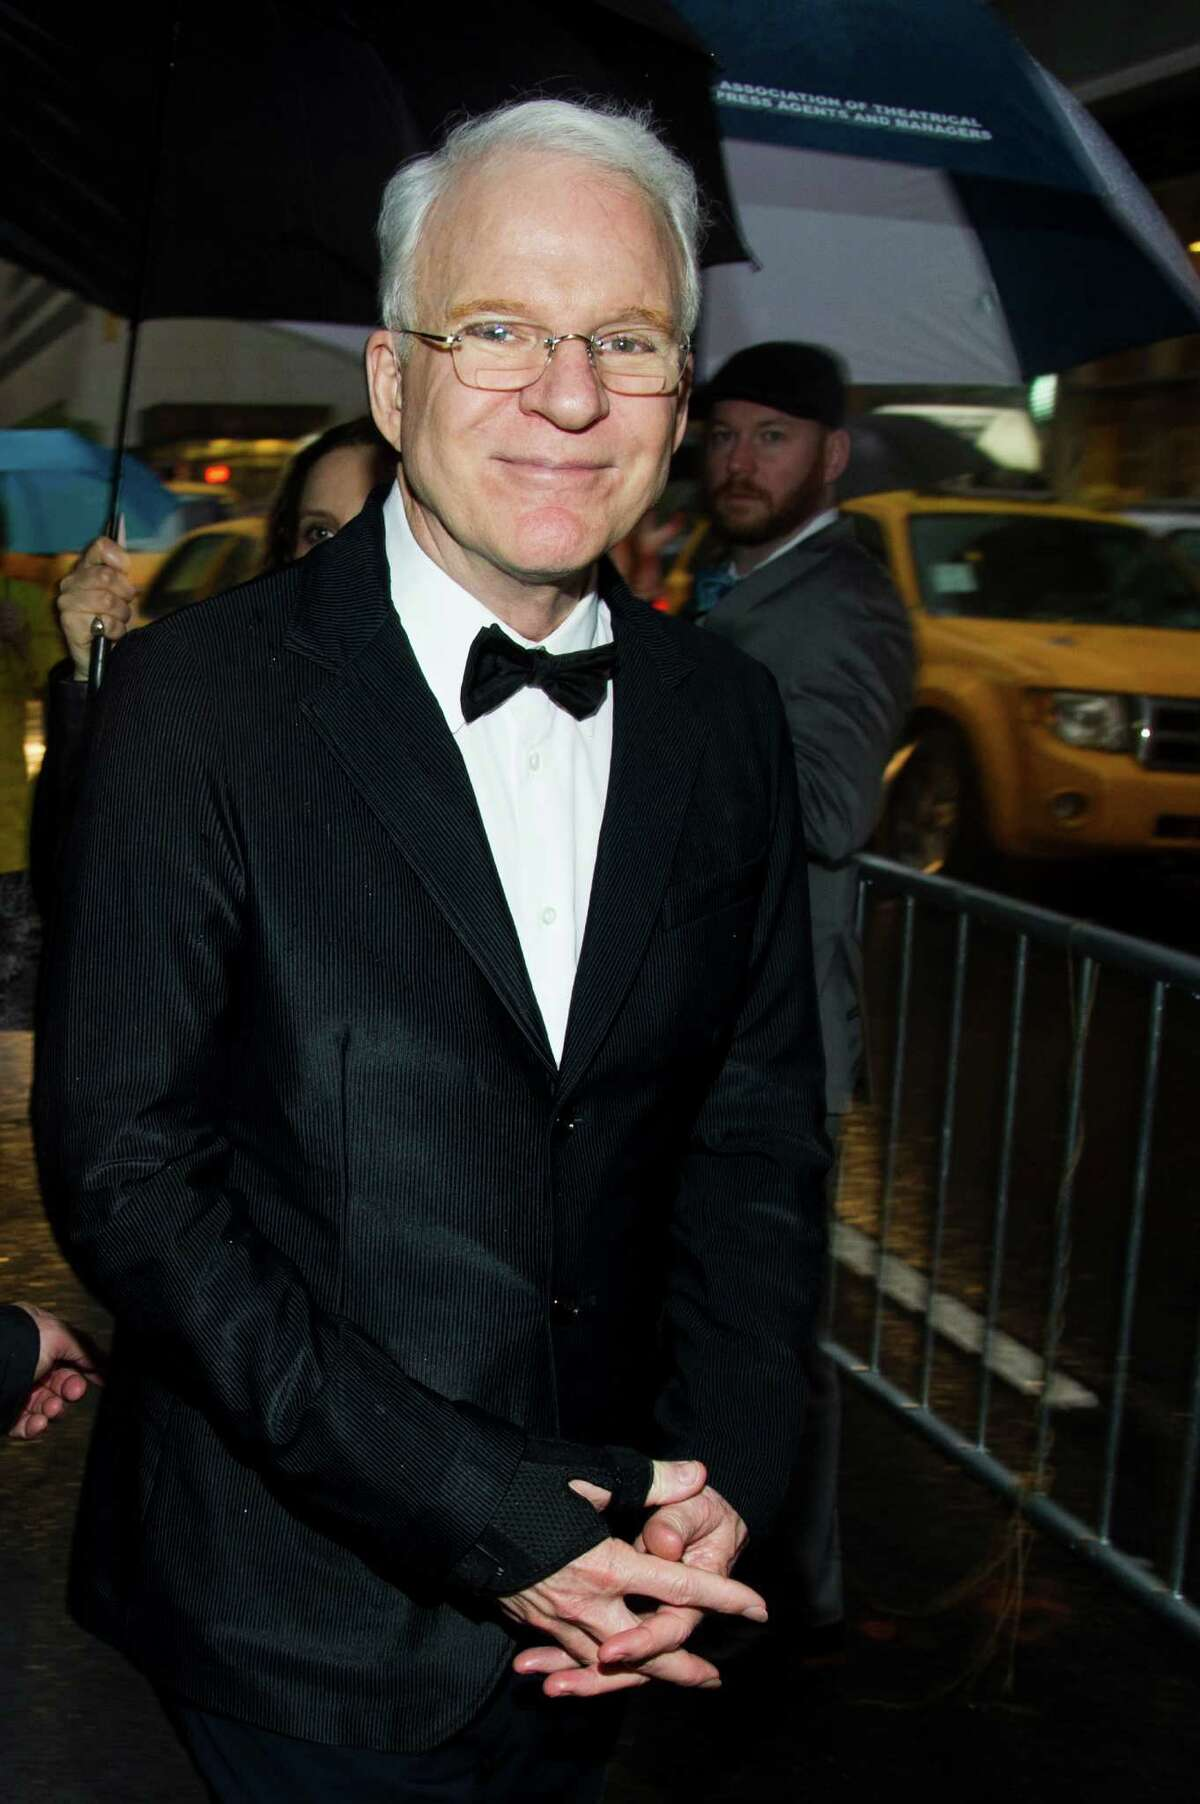 Steve Martin attends the 2013 Drama Desk Awards on Sunday, May 19, 2013 in New York. (Photo by Charles Sykes/Invision/AP)